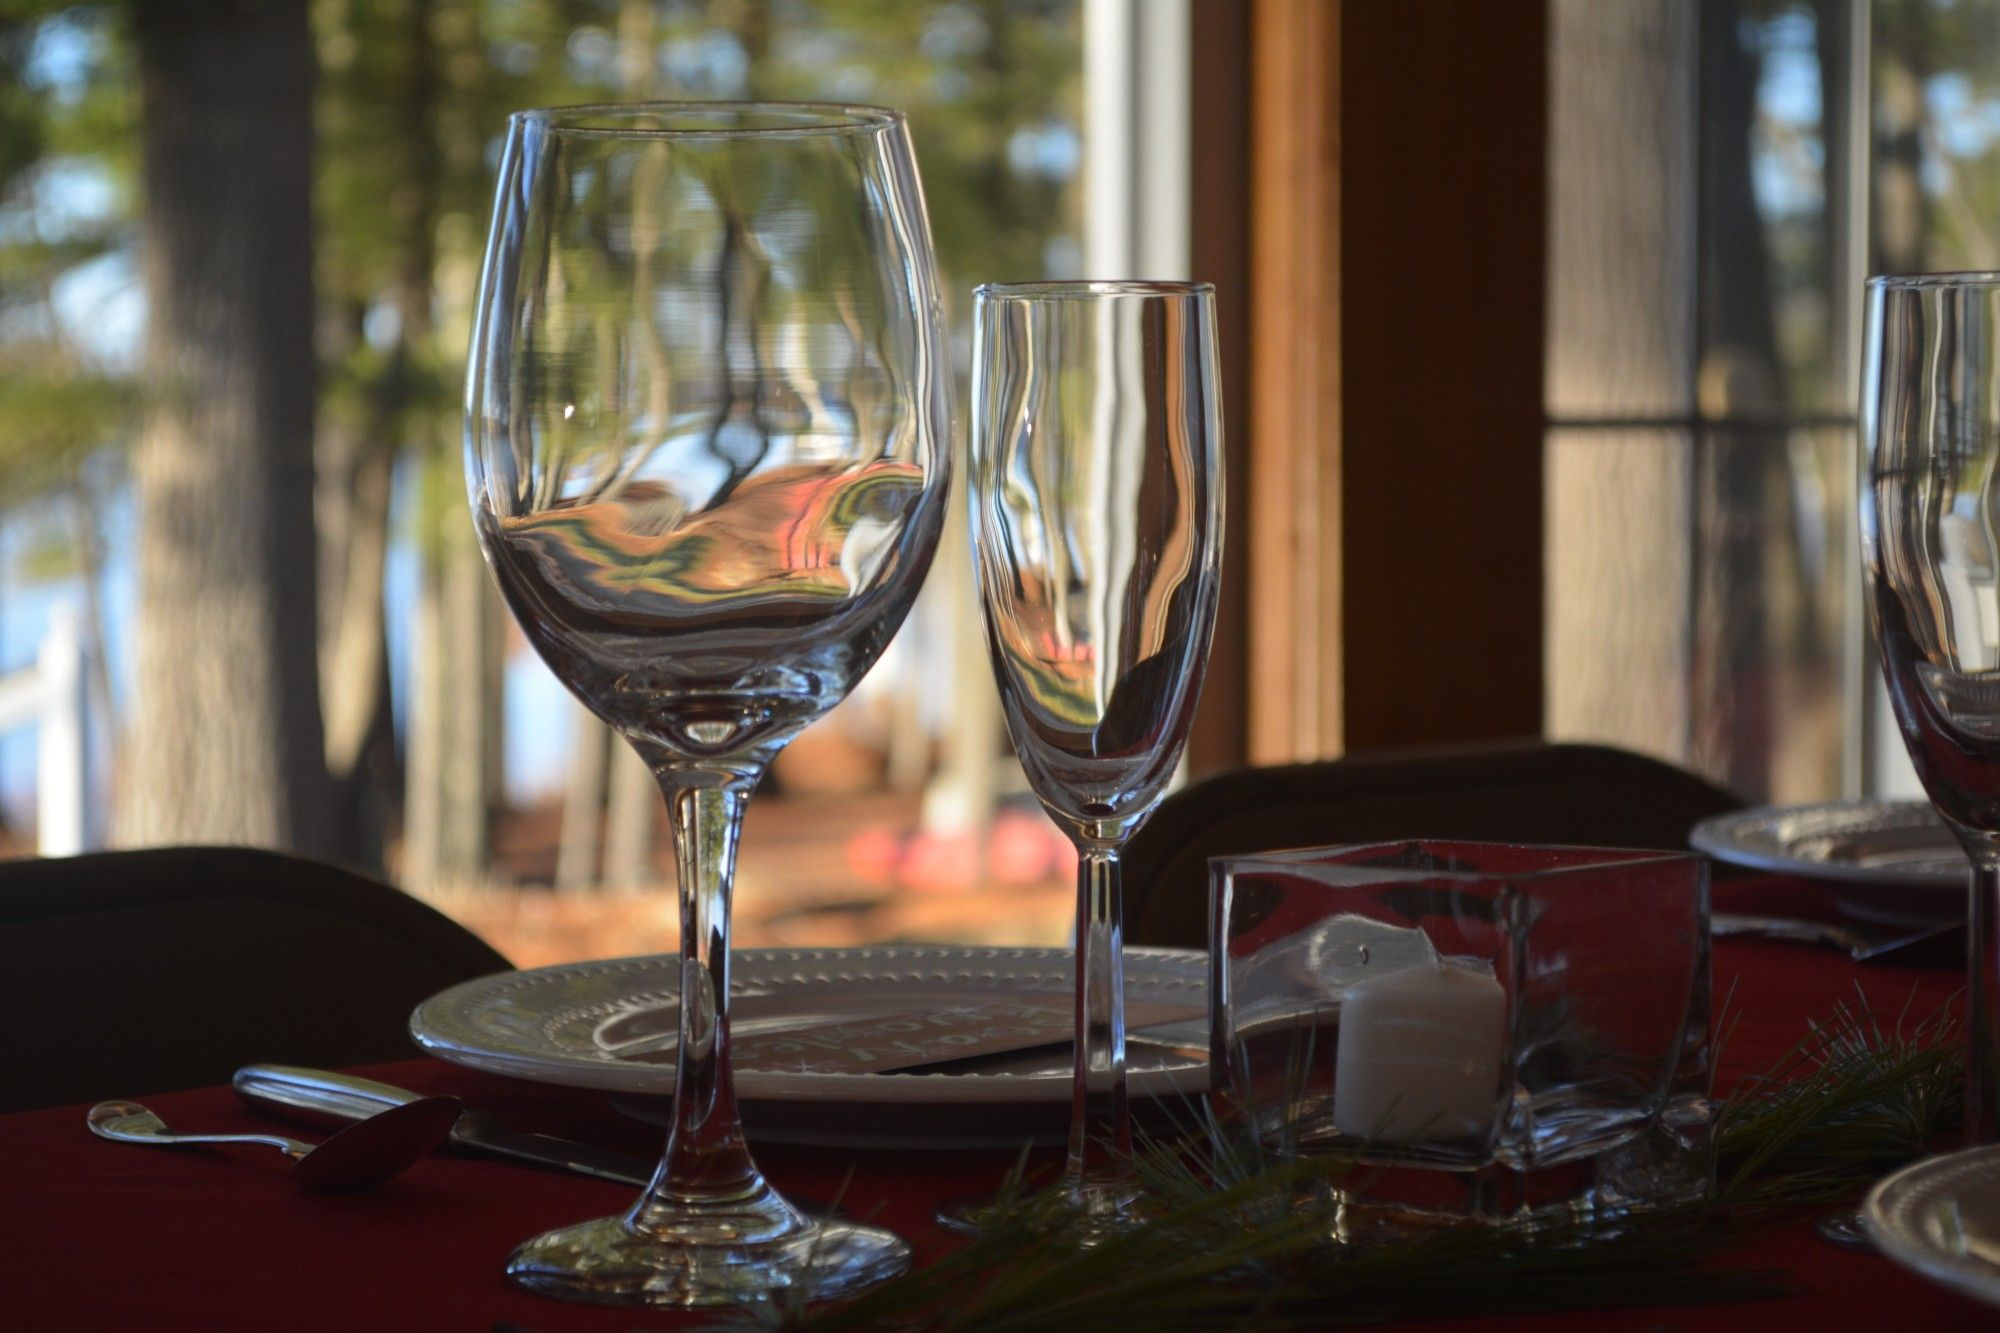 Two Terrific New Area Restaurants In Nearby Lewiston Maine That We Are Highly Recommending To